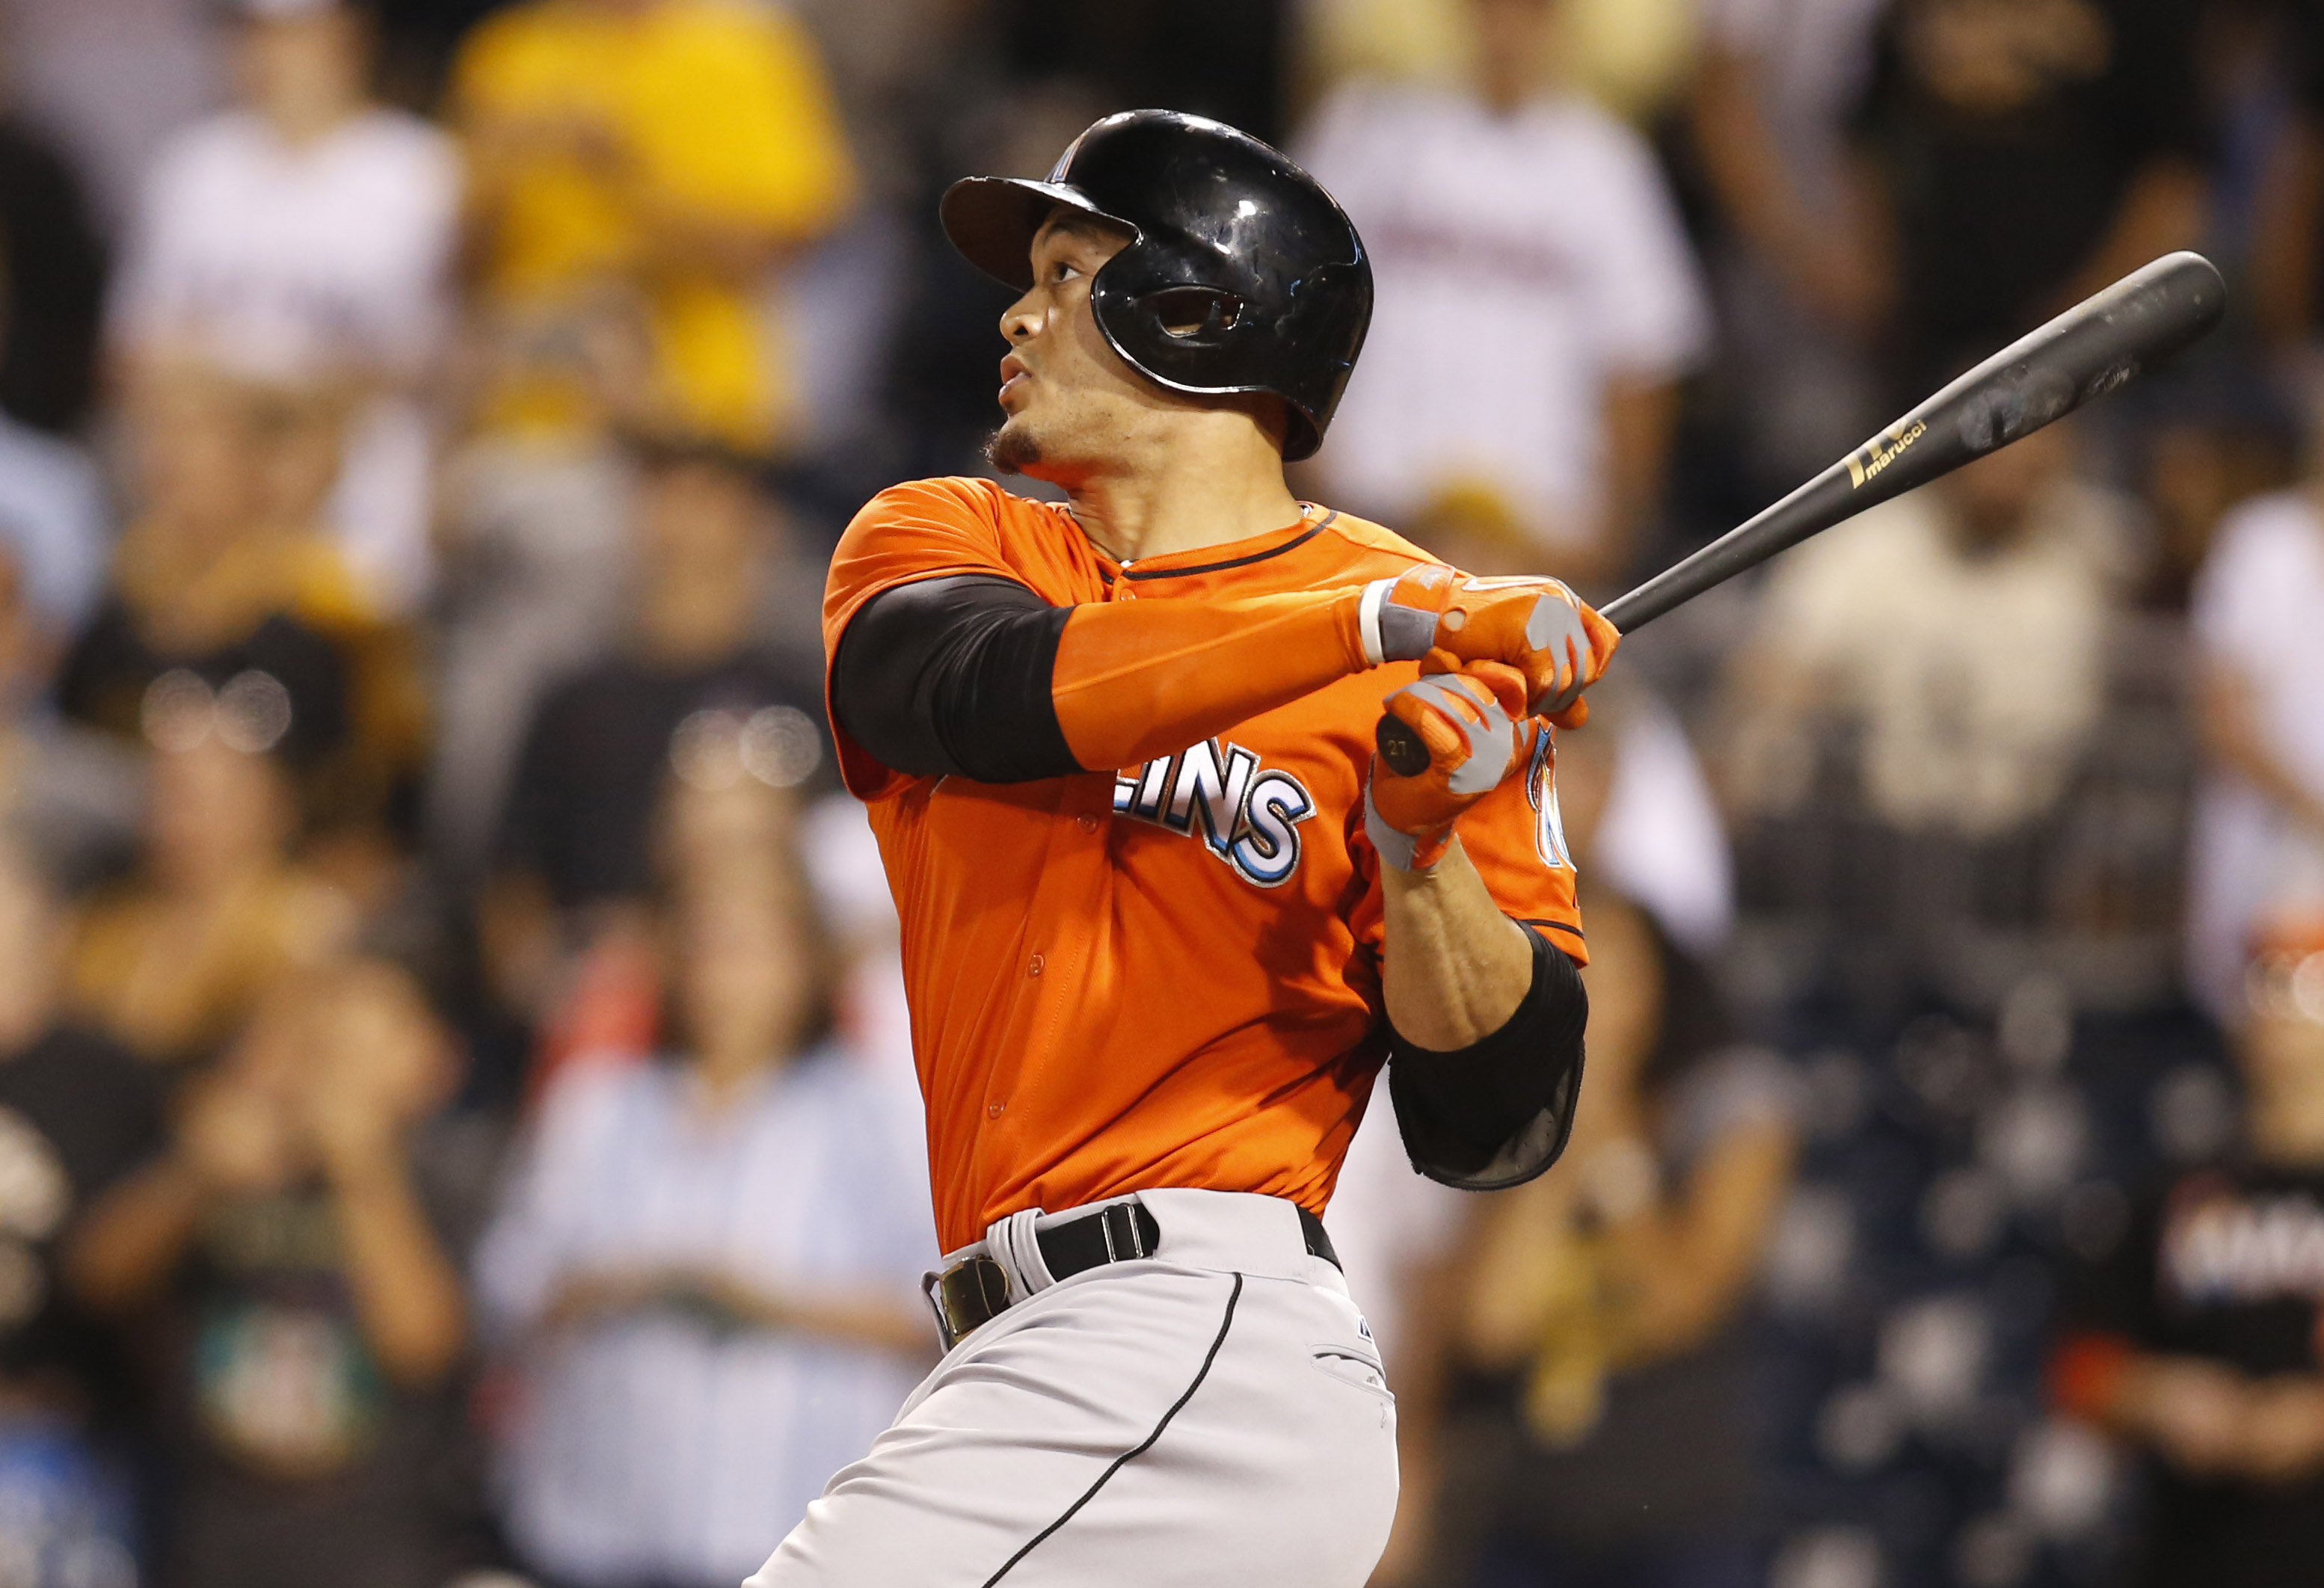 Giancarlo Stanton has unquestionable strength